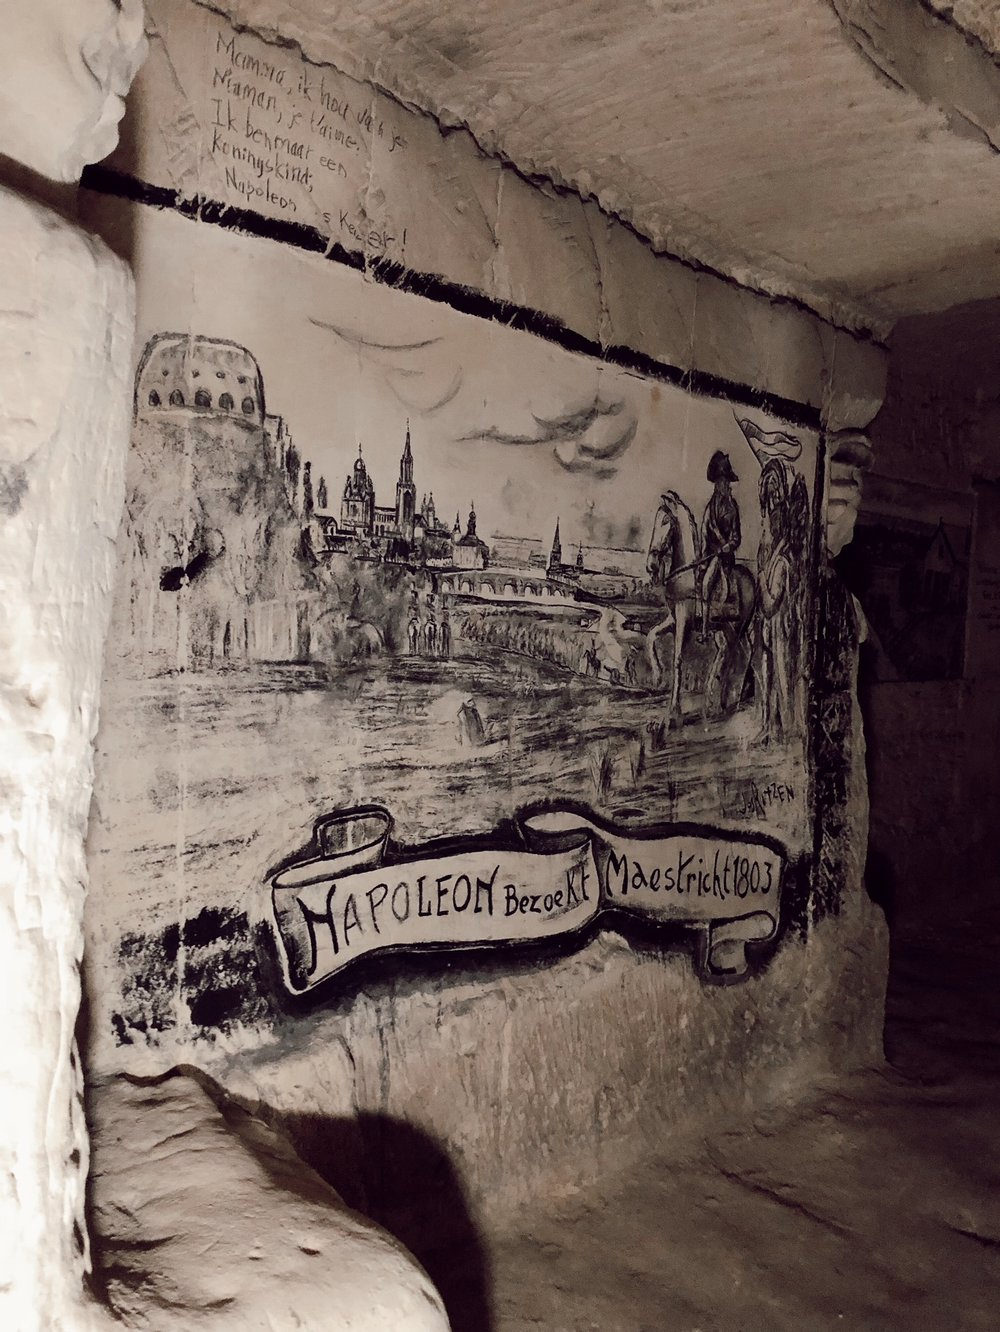 Charcoal painting in the tunnels